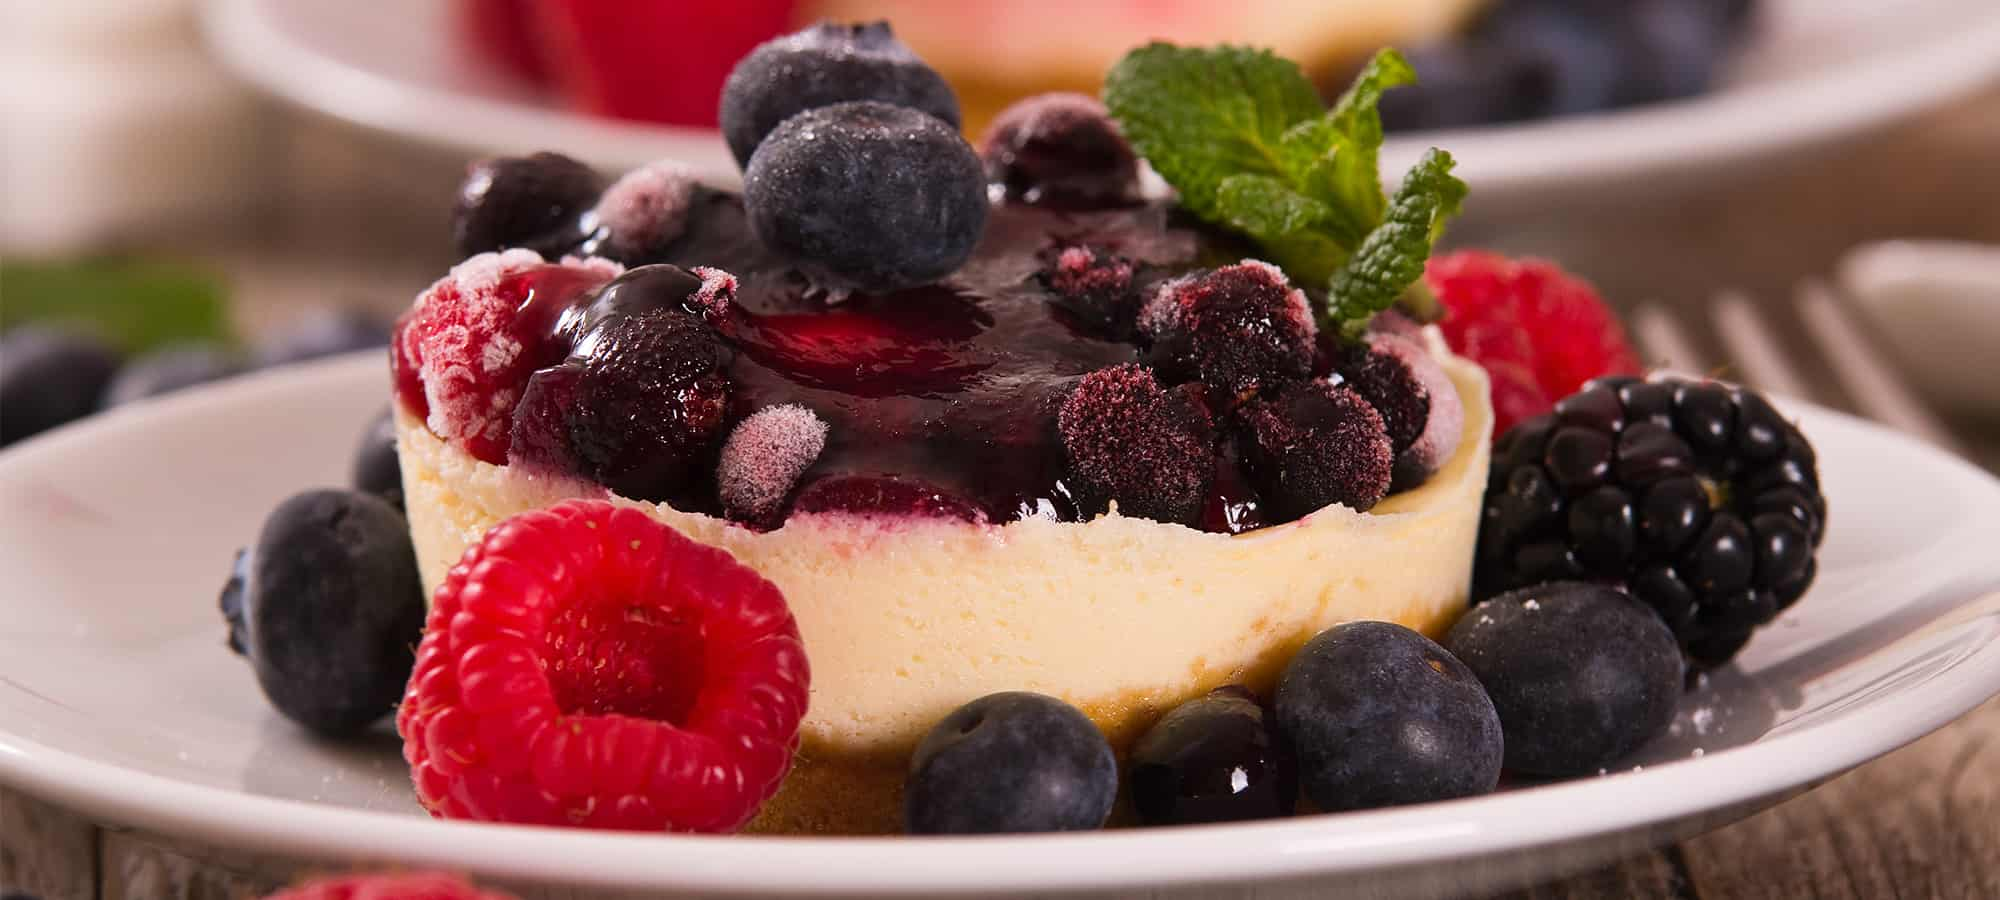 Easy and Delicious Mixed Berry Cheesecake Recipe